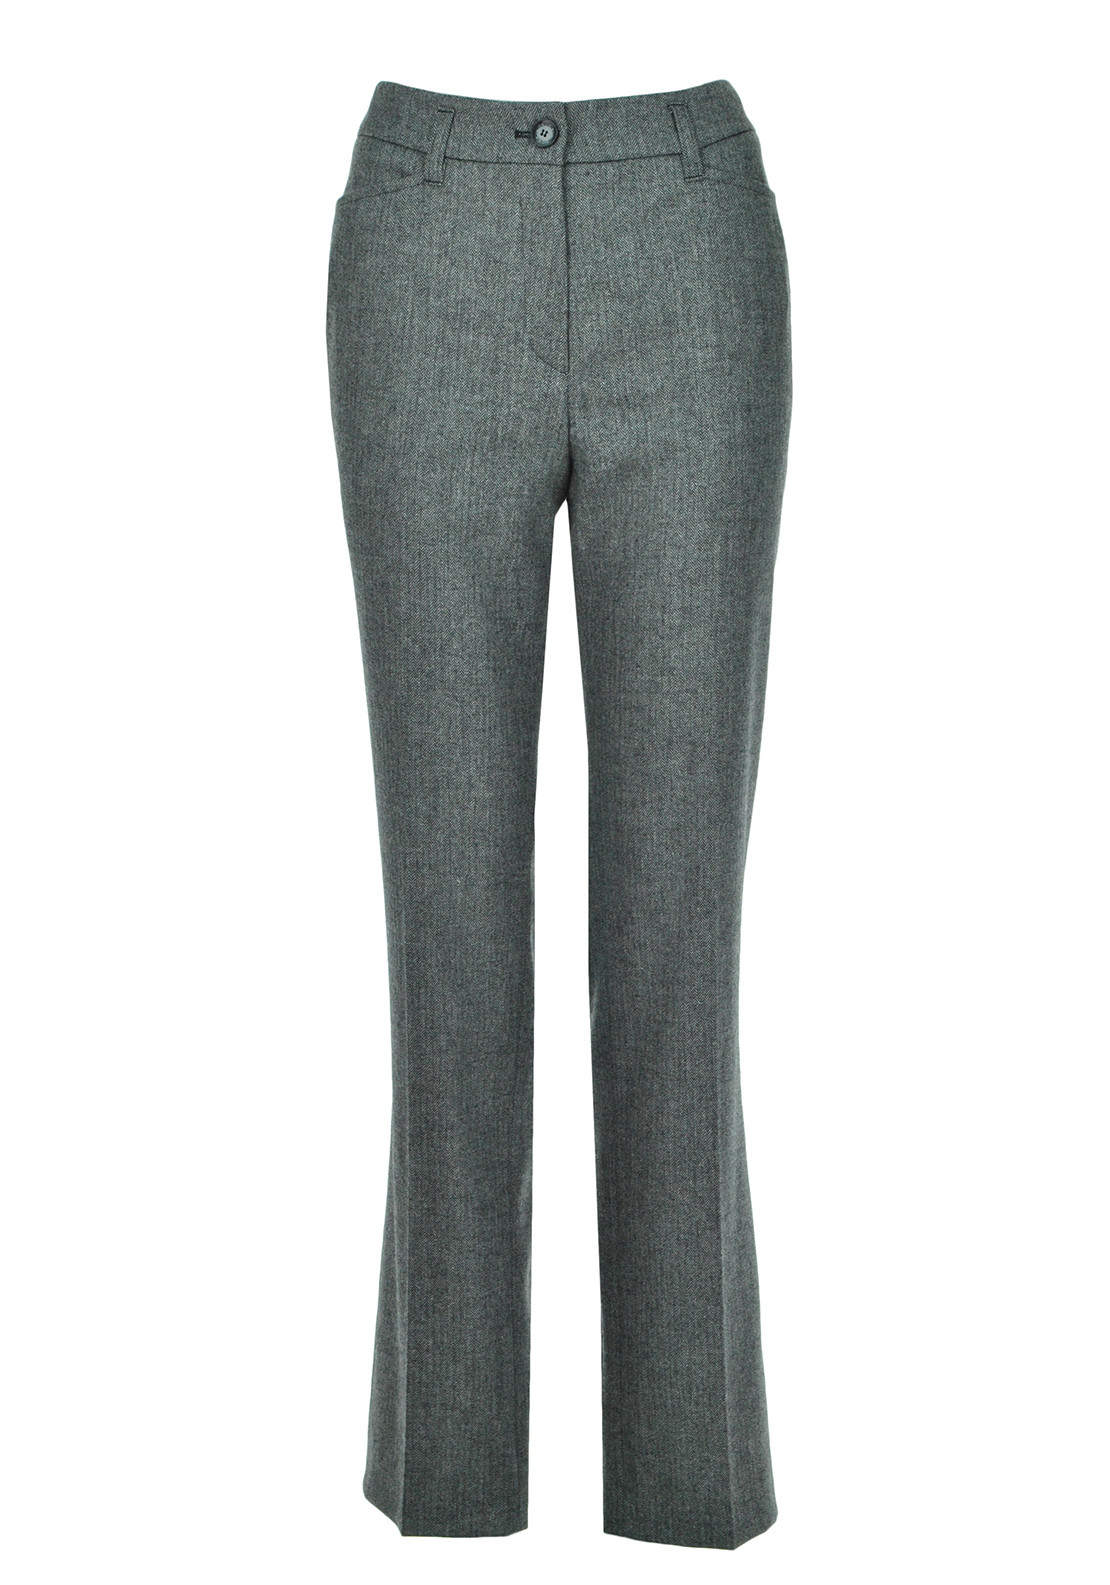 Gerry Weber Pamela Straight Leg Tweed Trousers, Grey